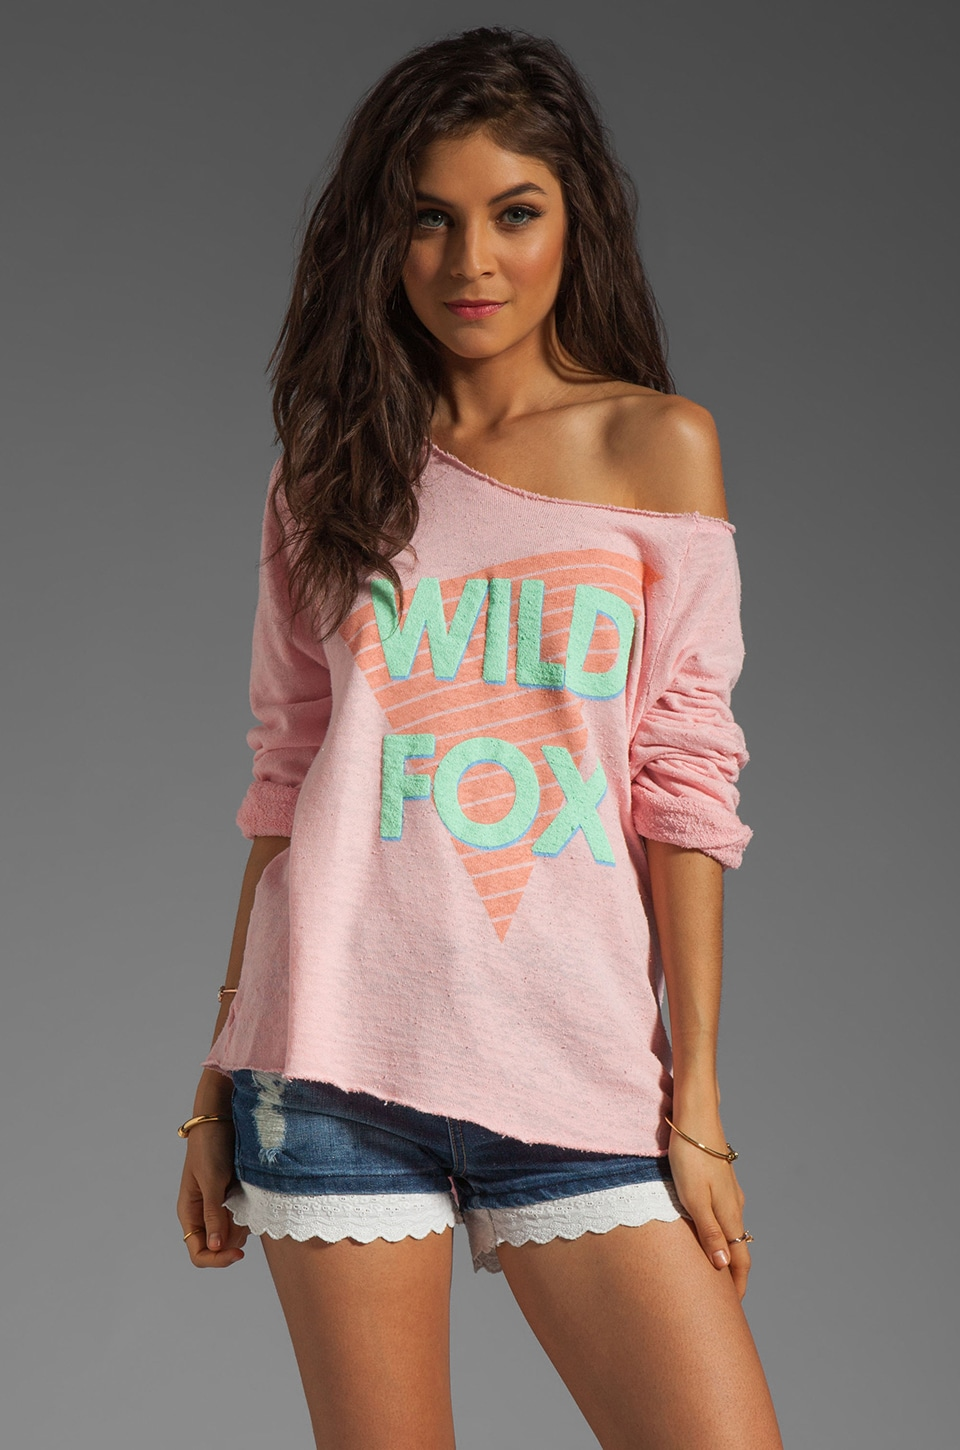 Wildfox Couture Fonda Fox Off the Shoulder Sweatshirt in Teen Dream